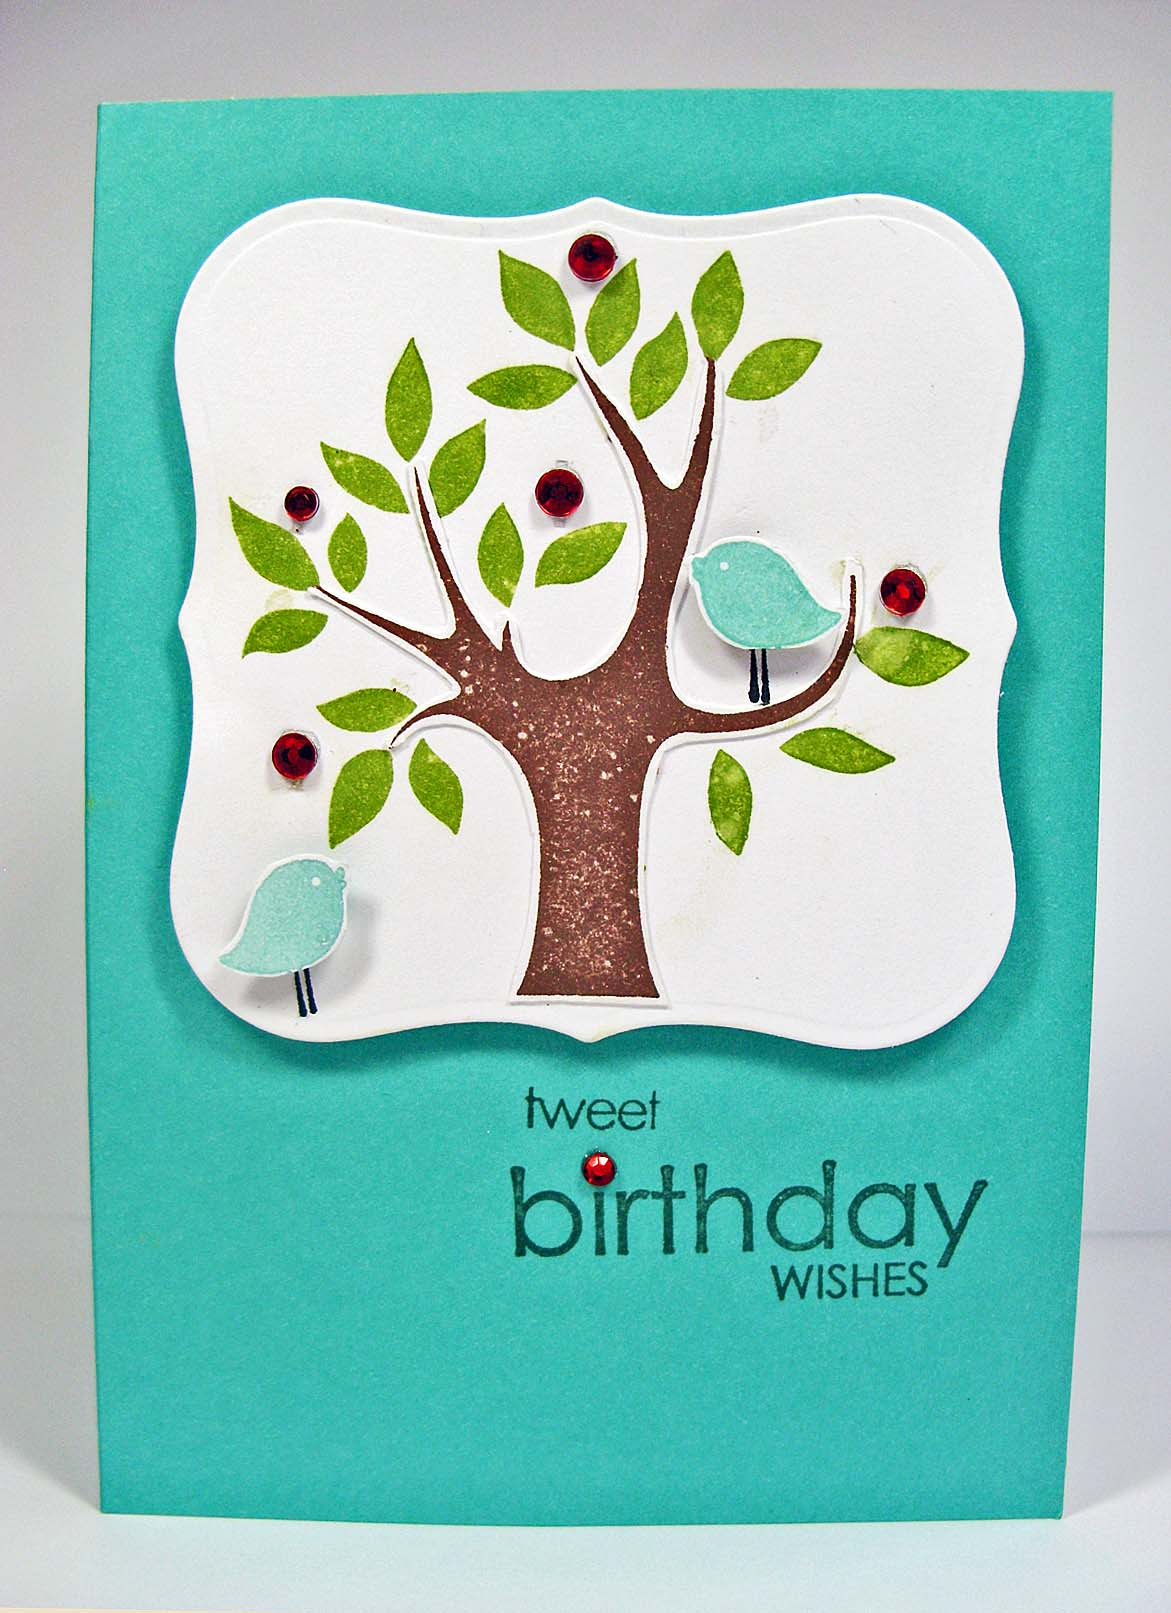 10 Graceful And Attractive Birthday Cards To Send Your Wish To Your